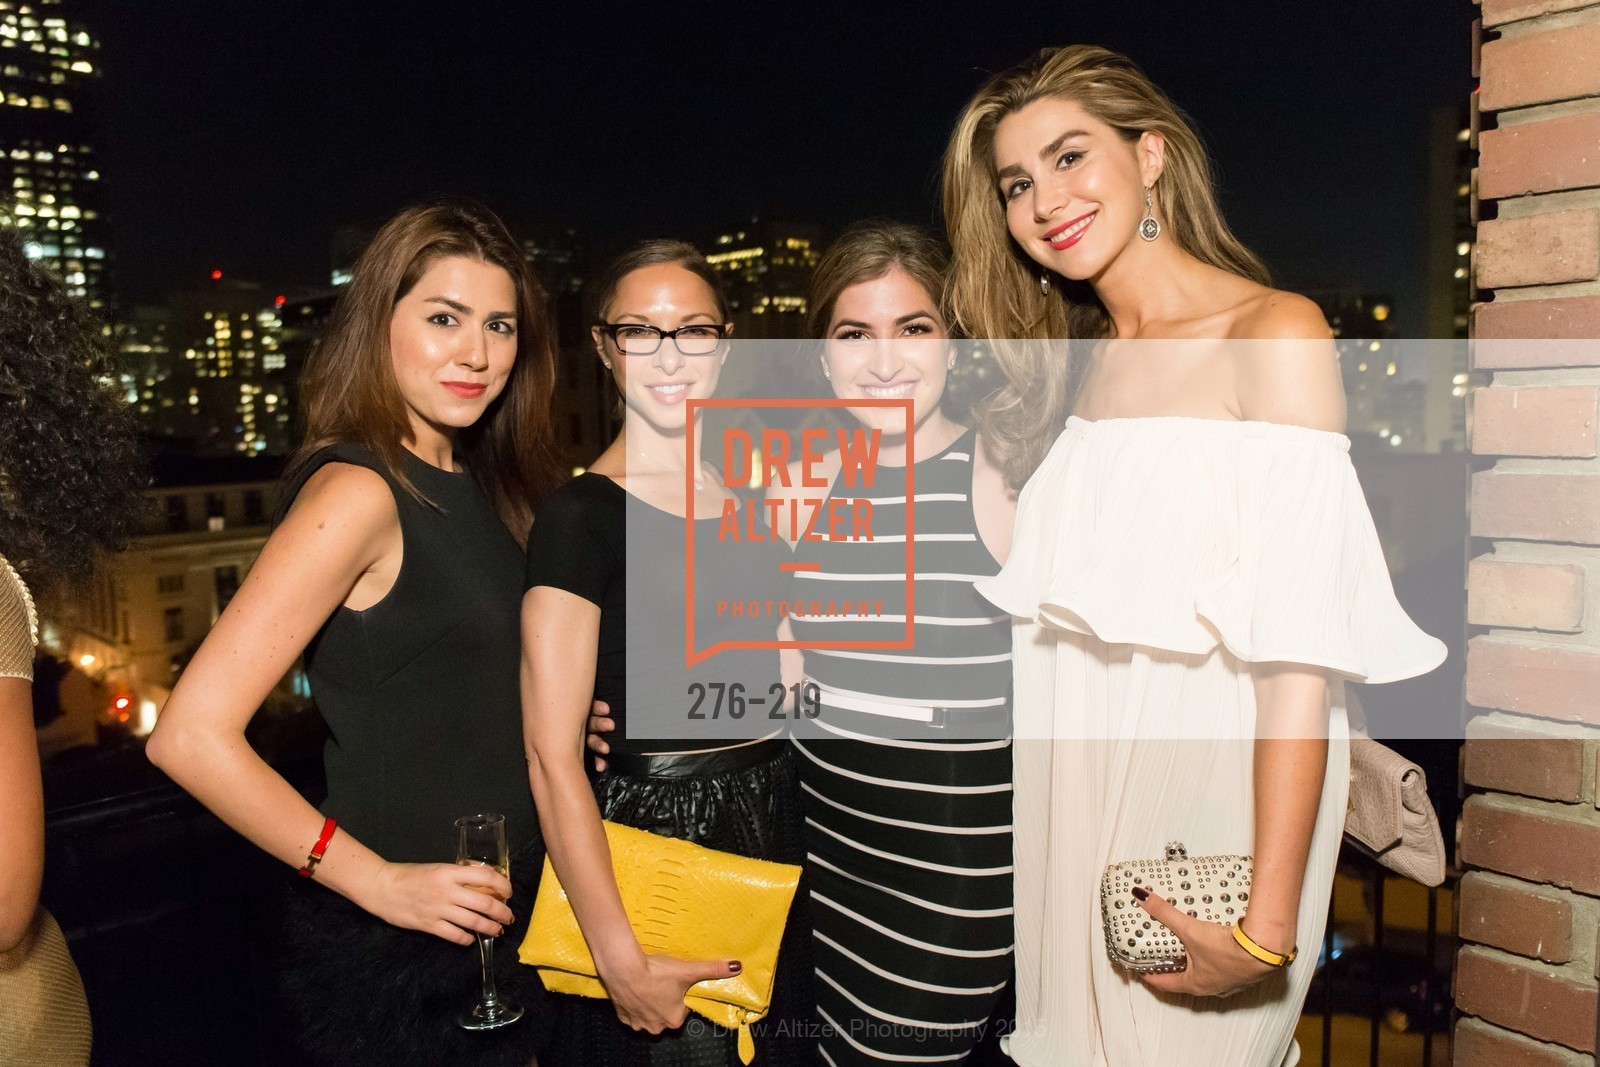 Roya Pakzad, Suzanne Rabikoff, Shugufa Habibi, Ronak Pakzad, Champagne Reception & Screening of Million Dollar Listing San Francisco, University Club. 800 Powell St, August 5th, 2015,Drew Altizer, Drew Altizer Photography, full-service agency, private events, San Francisco photographer, photographer california